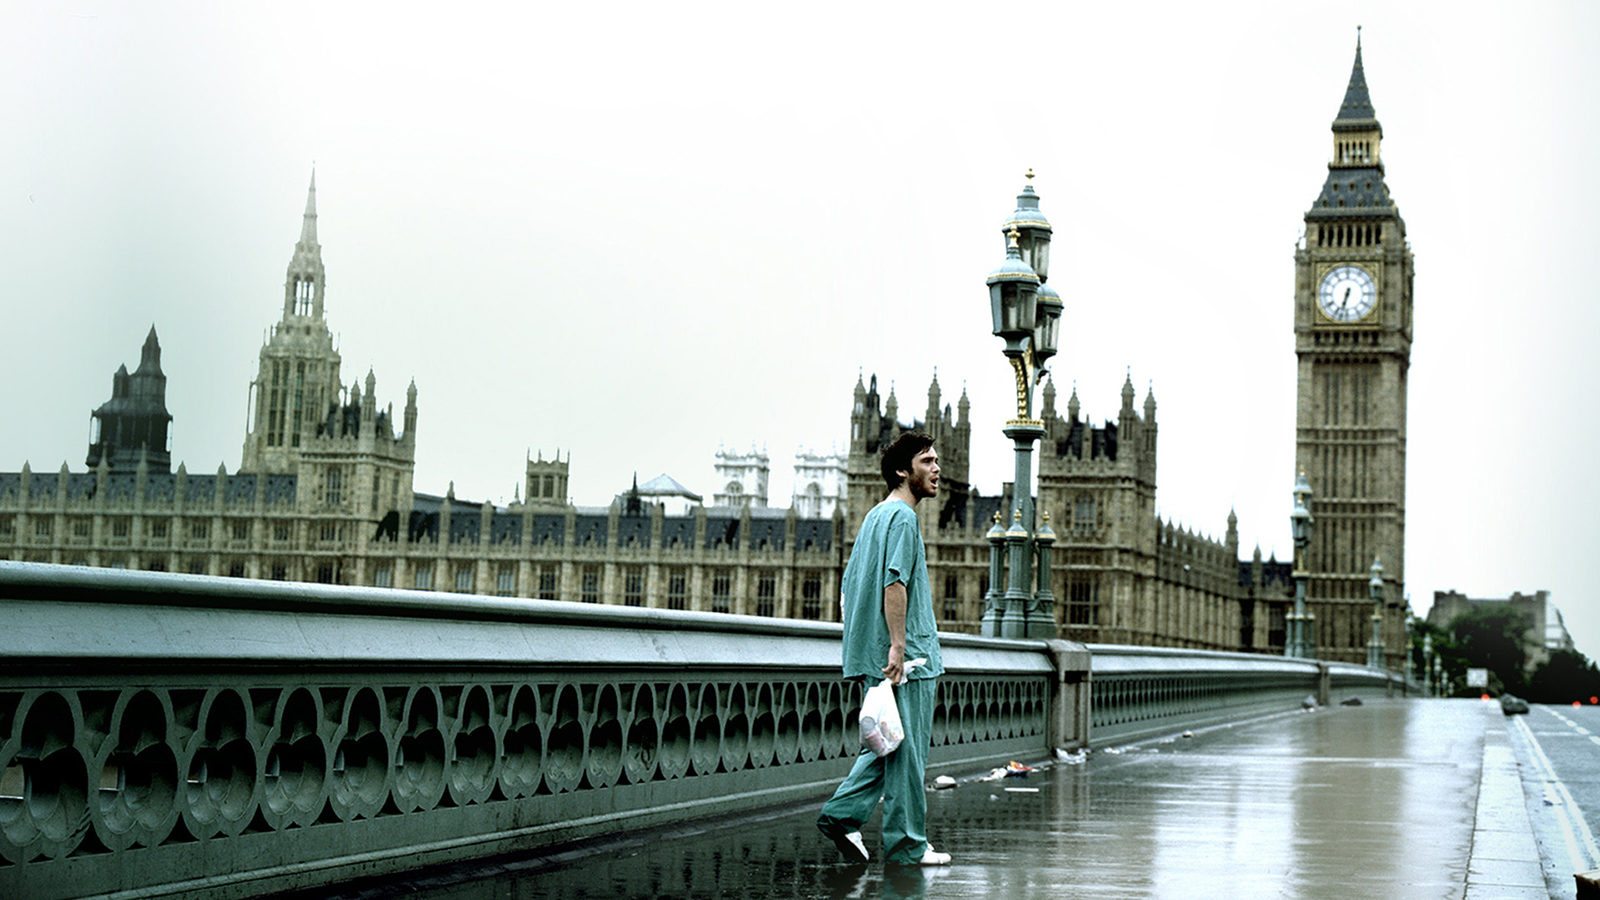 Celestial Cinema Halloween: 28 Days Later (18) 7:30PM: SOLD OUT